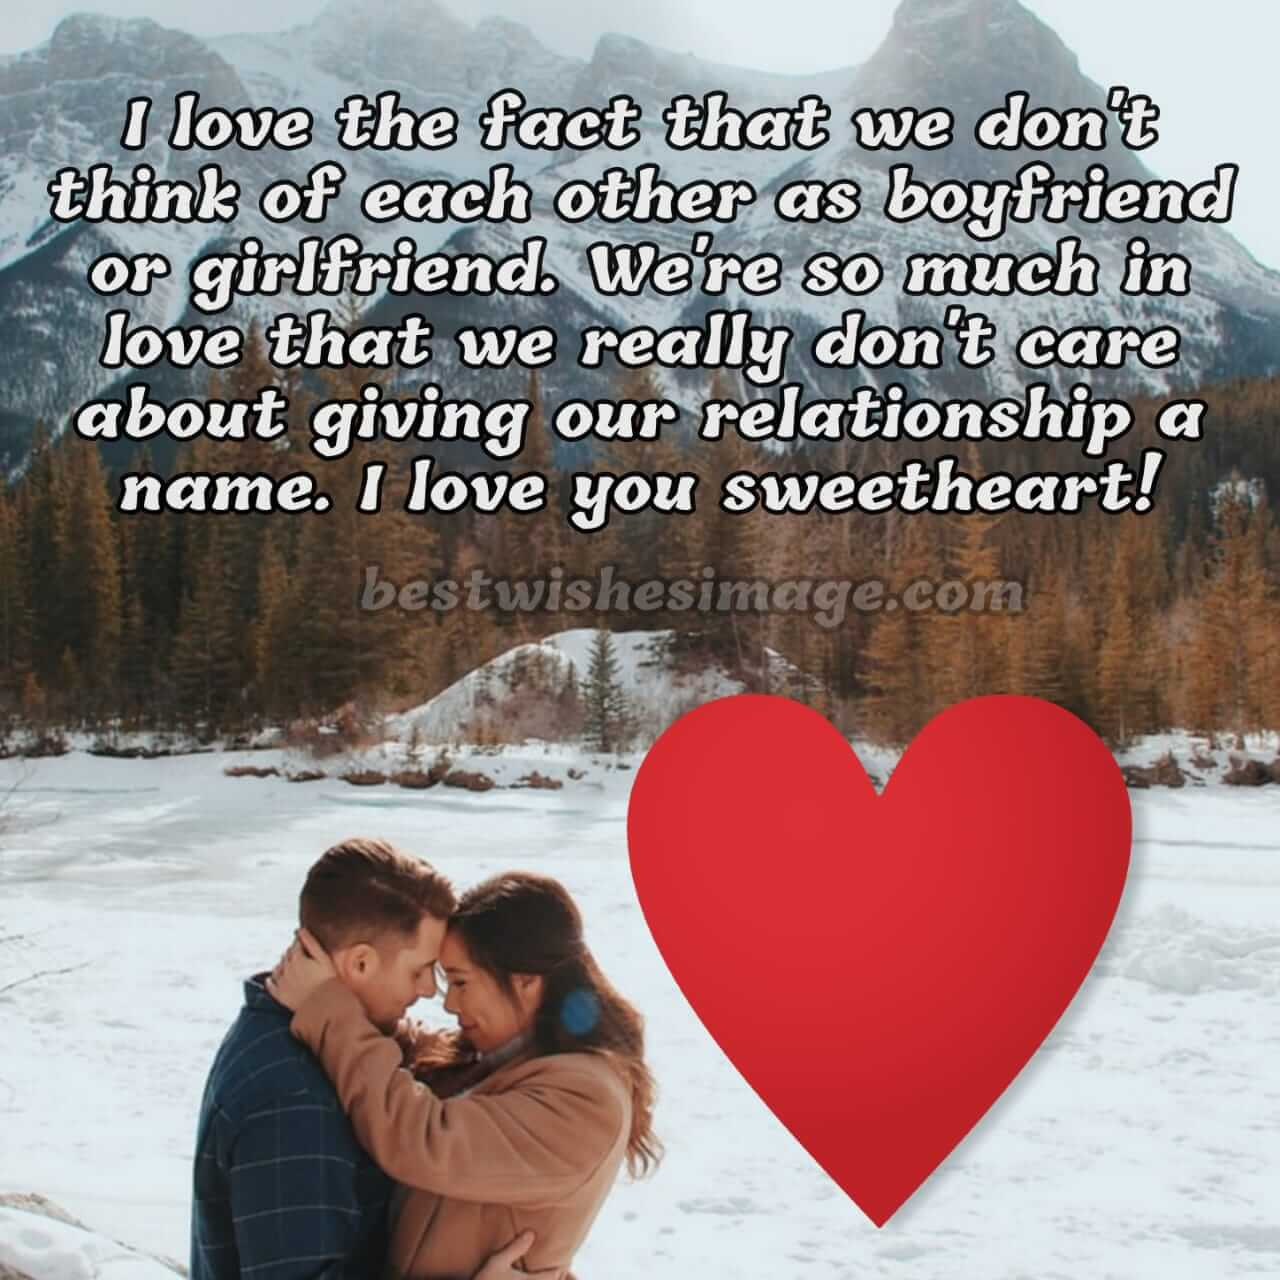 45 True Love Images Photo Pictures Wallpaper Free Download Best Wishes Image